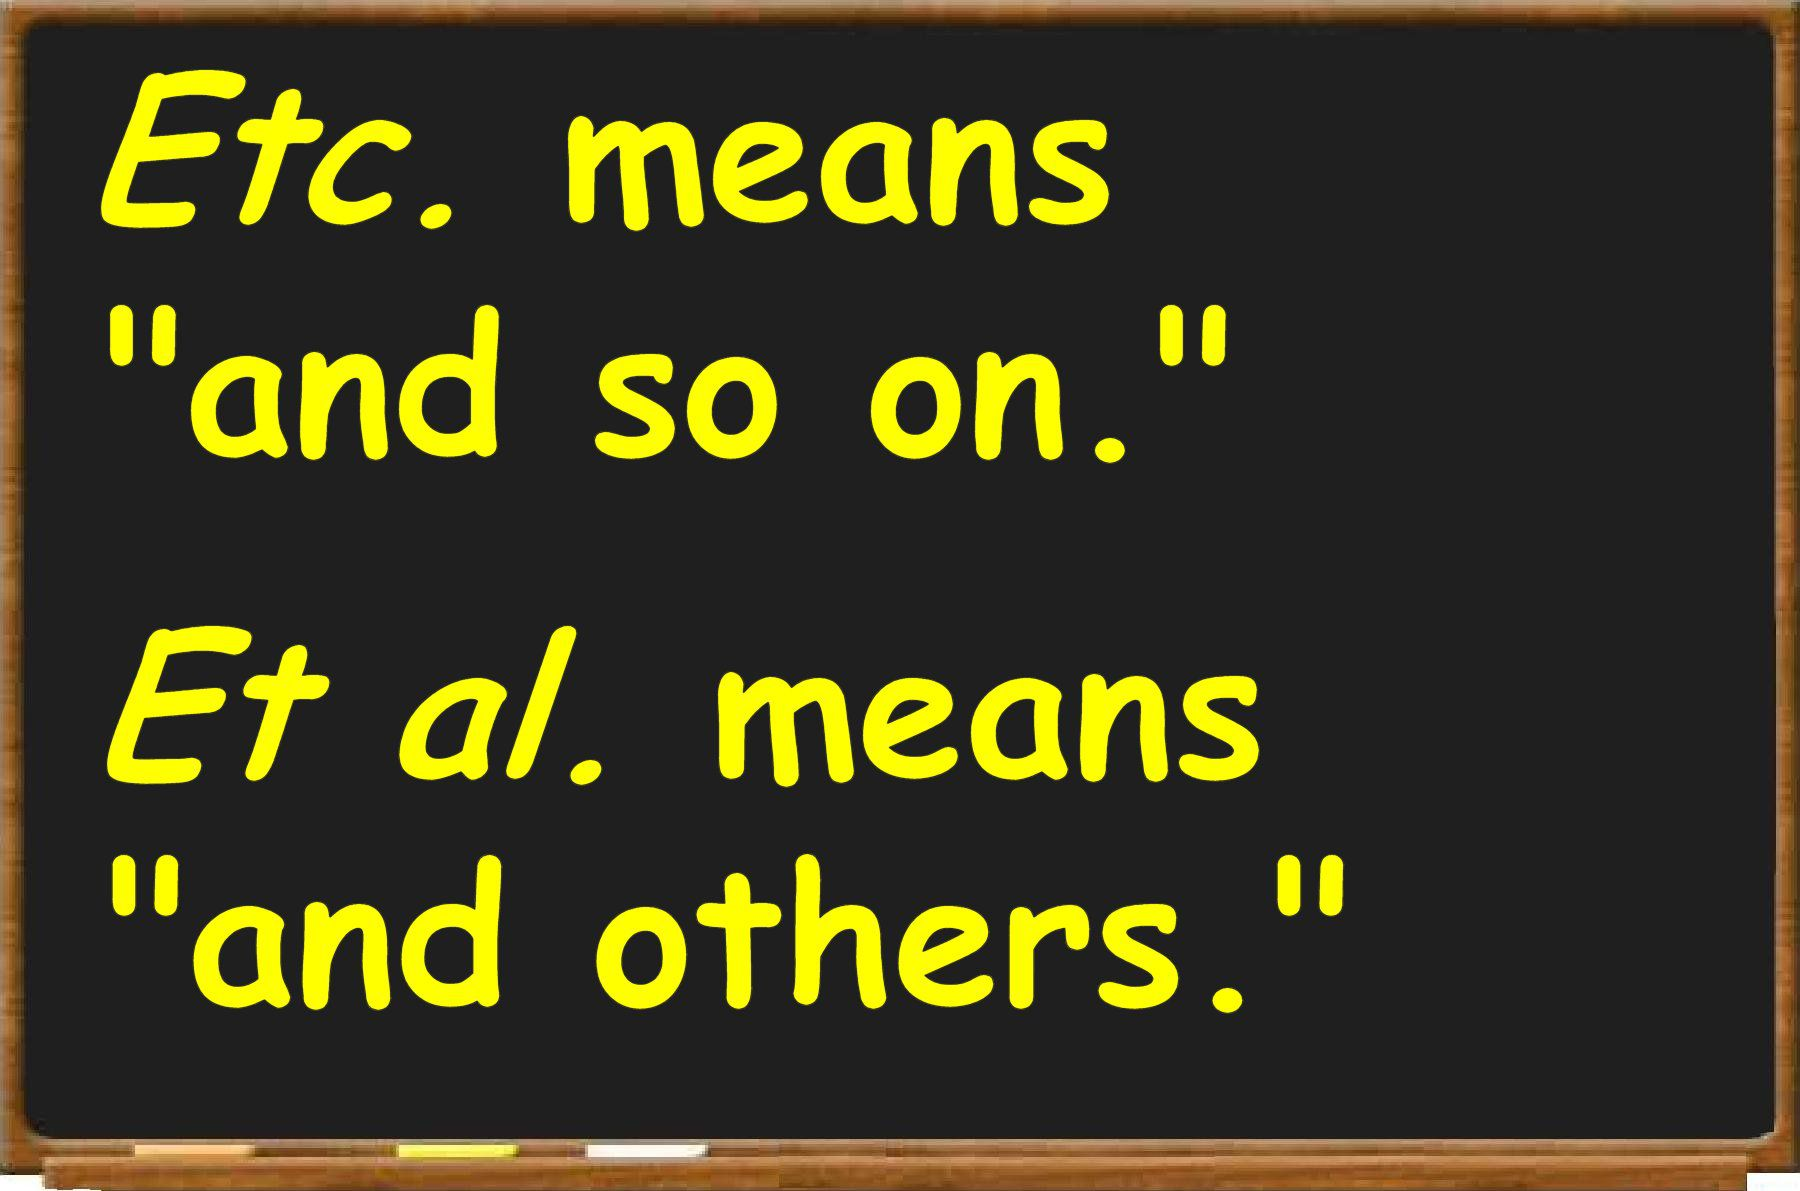 Medical abbreviation for between - What S The Difference Between The Abbreviations Etc And Et Al